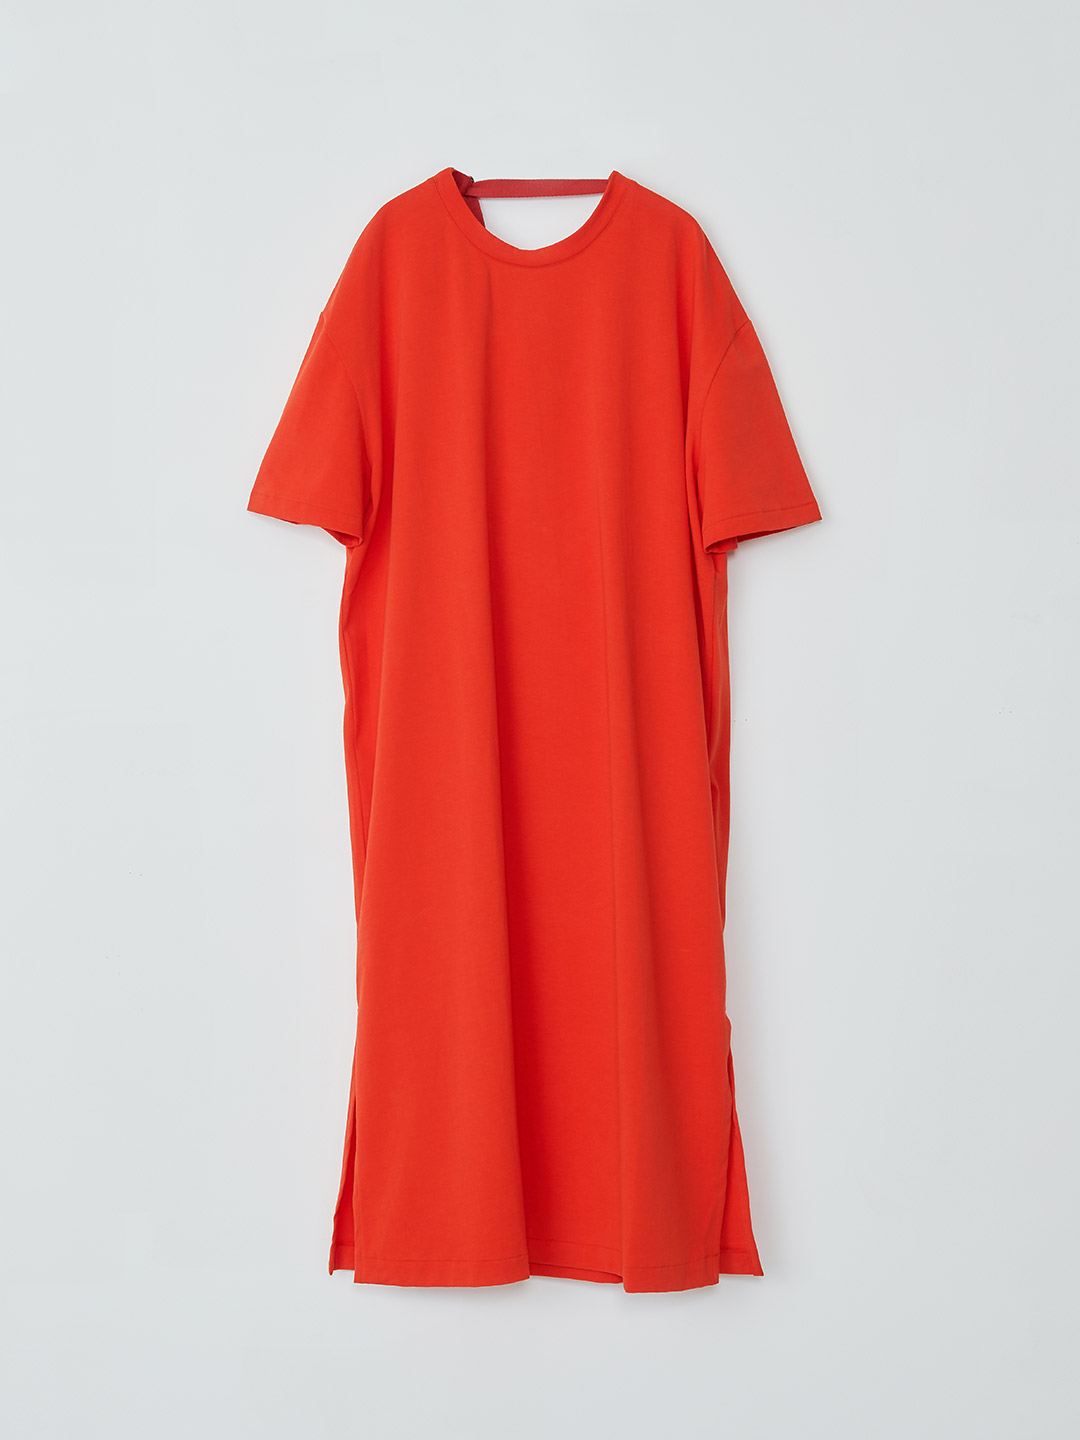 Draped Back Tee Dress - Red【LIMITED ITEM】